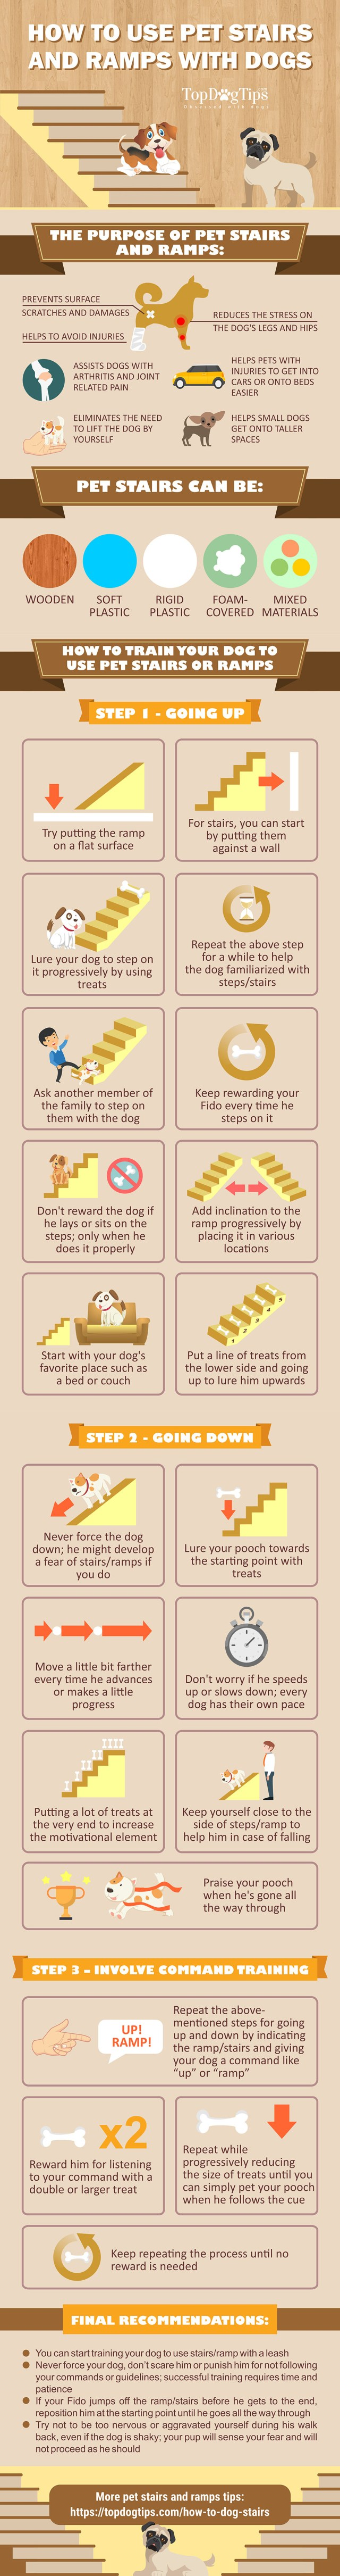 How to Train Dogs to Use Stairs and Ramps - Infographic